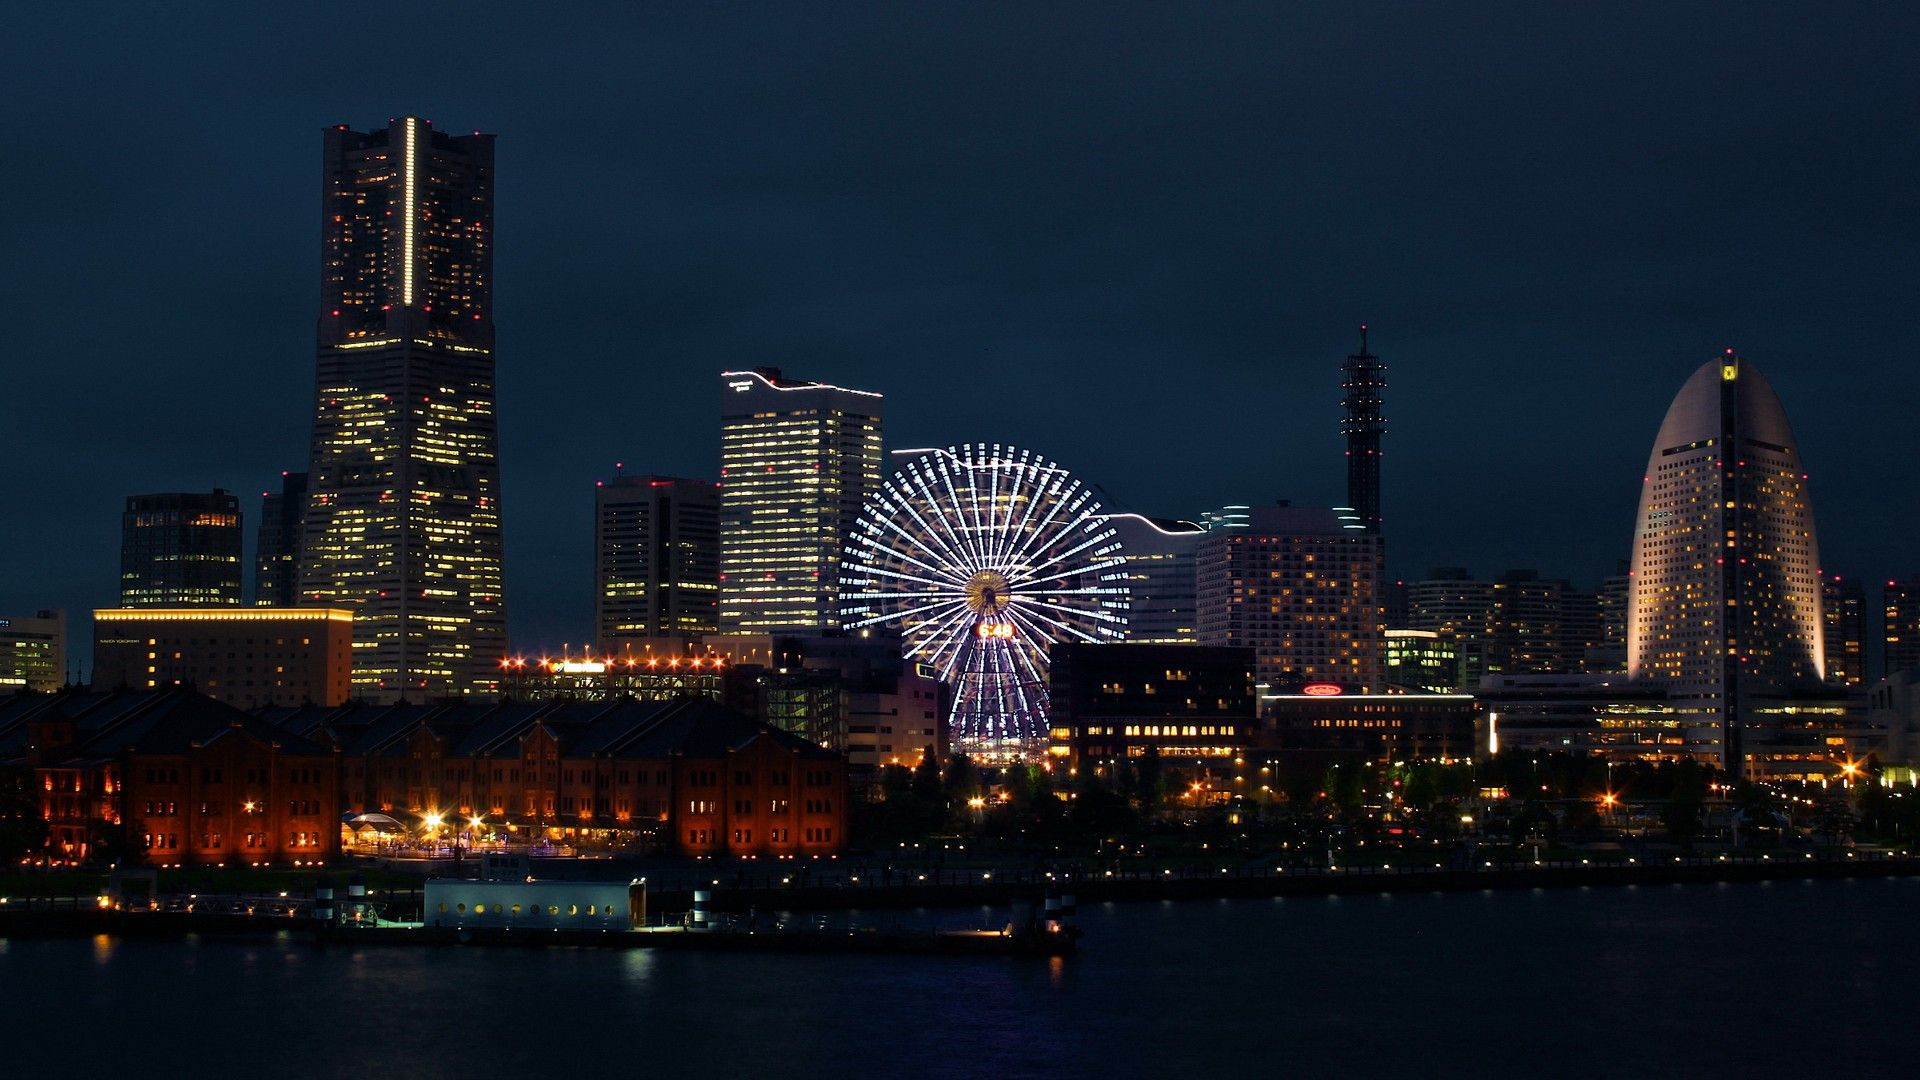 Japan Tokyo Cityscapes Wallpapers Hd Free 216979 Tokyo Japan Cityscape Wallpaper Tokyo Travel